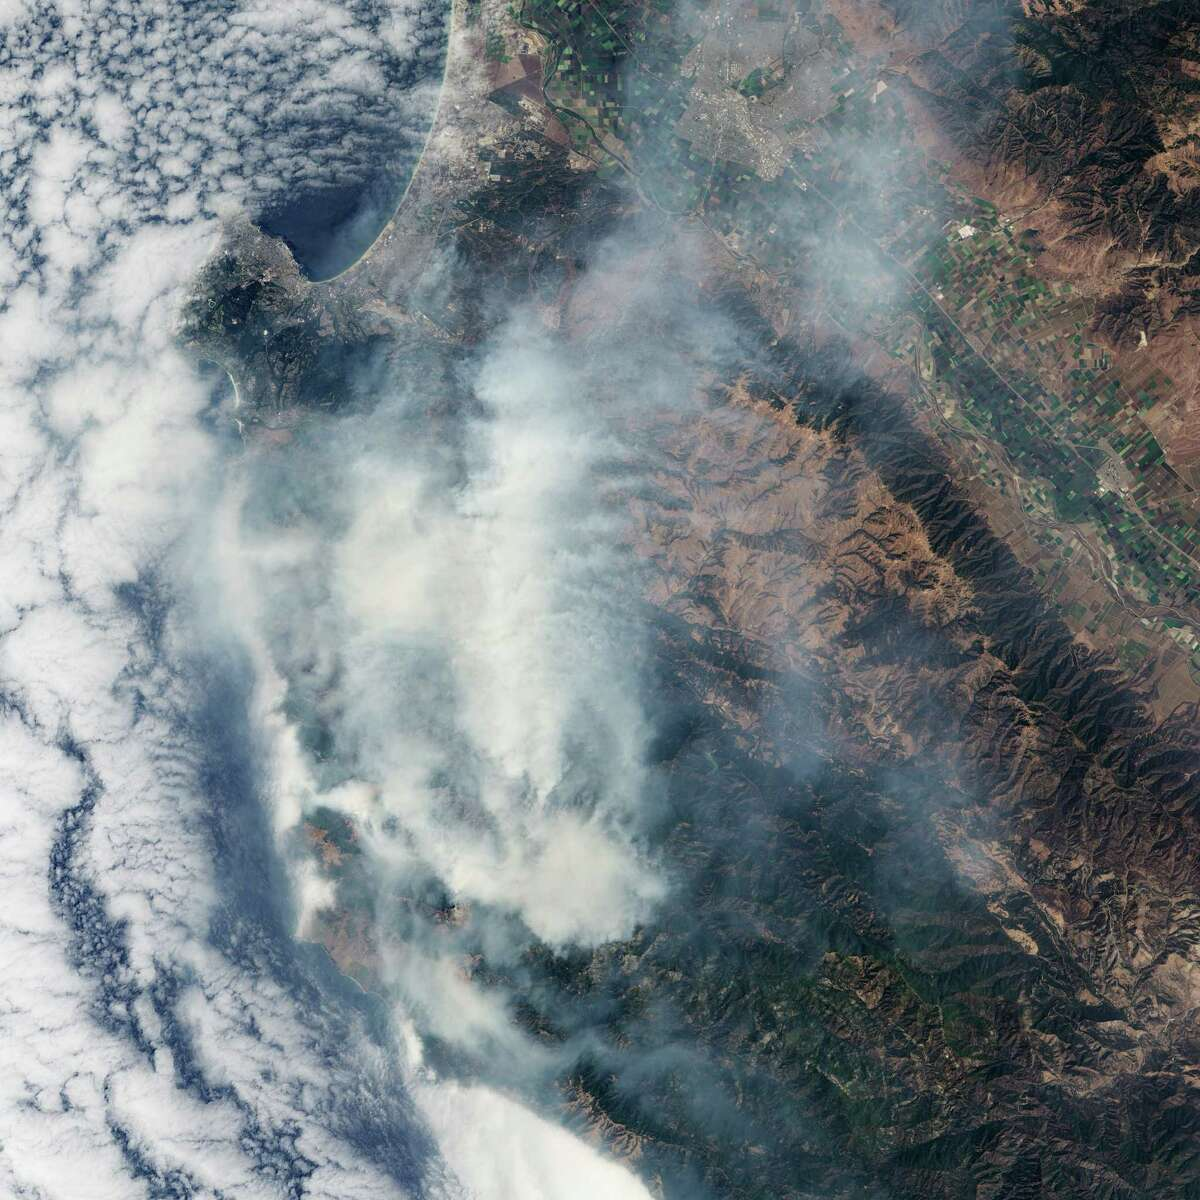 In a natural-color image, captured by NASA's Operational Land Imager on the Landsat 8 satellite, shows thick smoke obscuring the land surface over the Soberanes Fire.